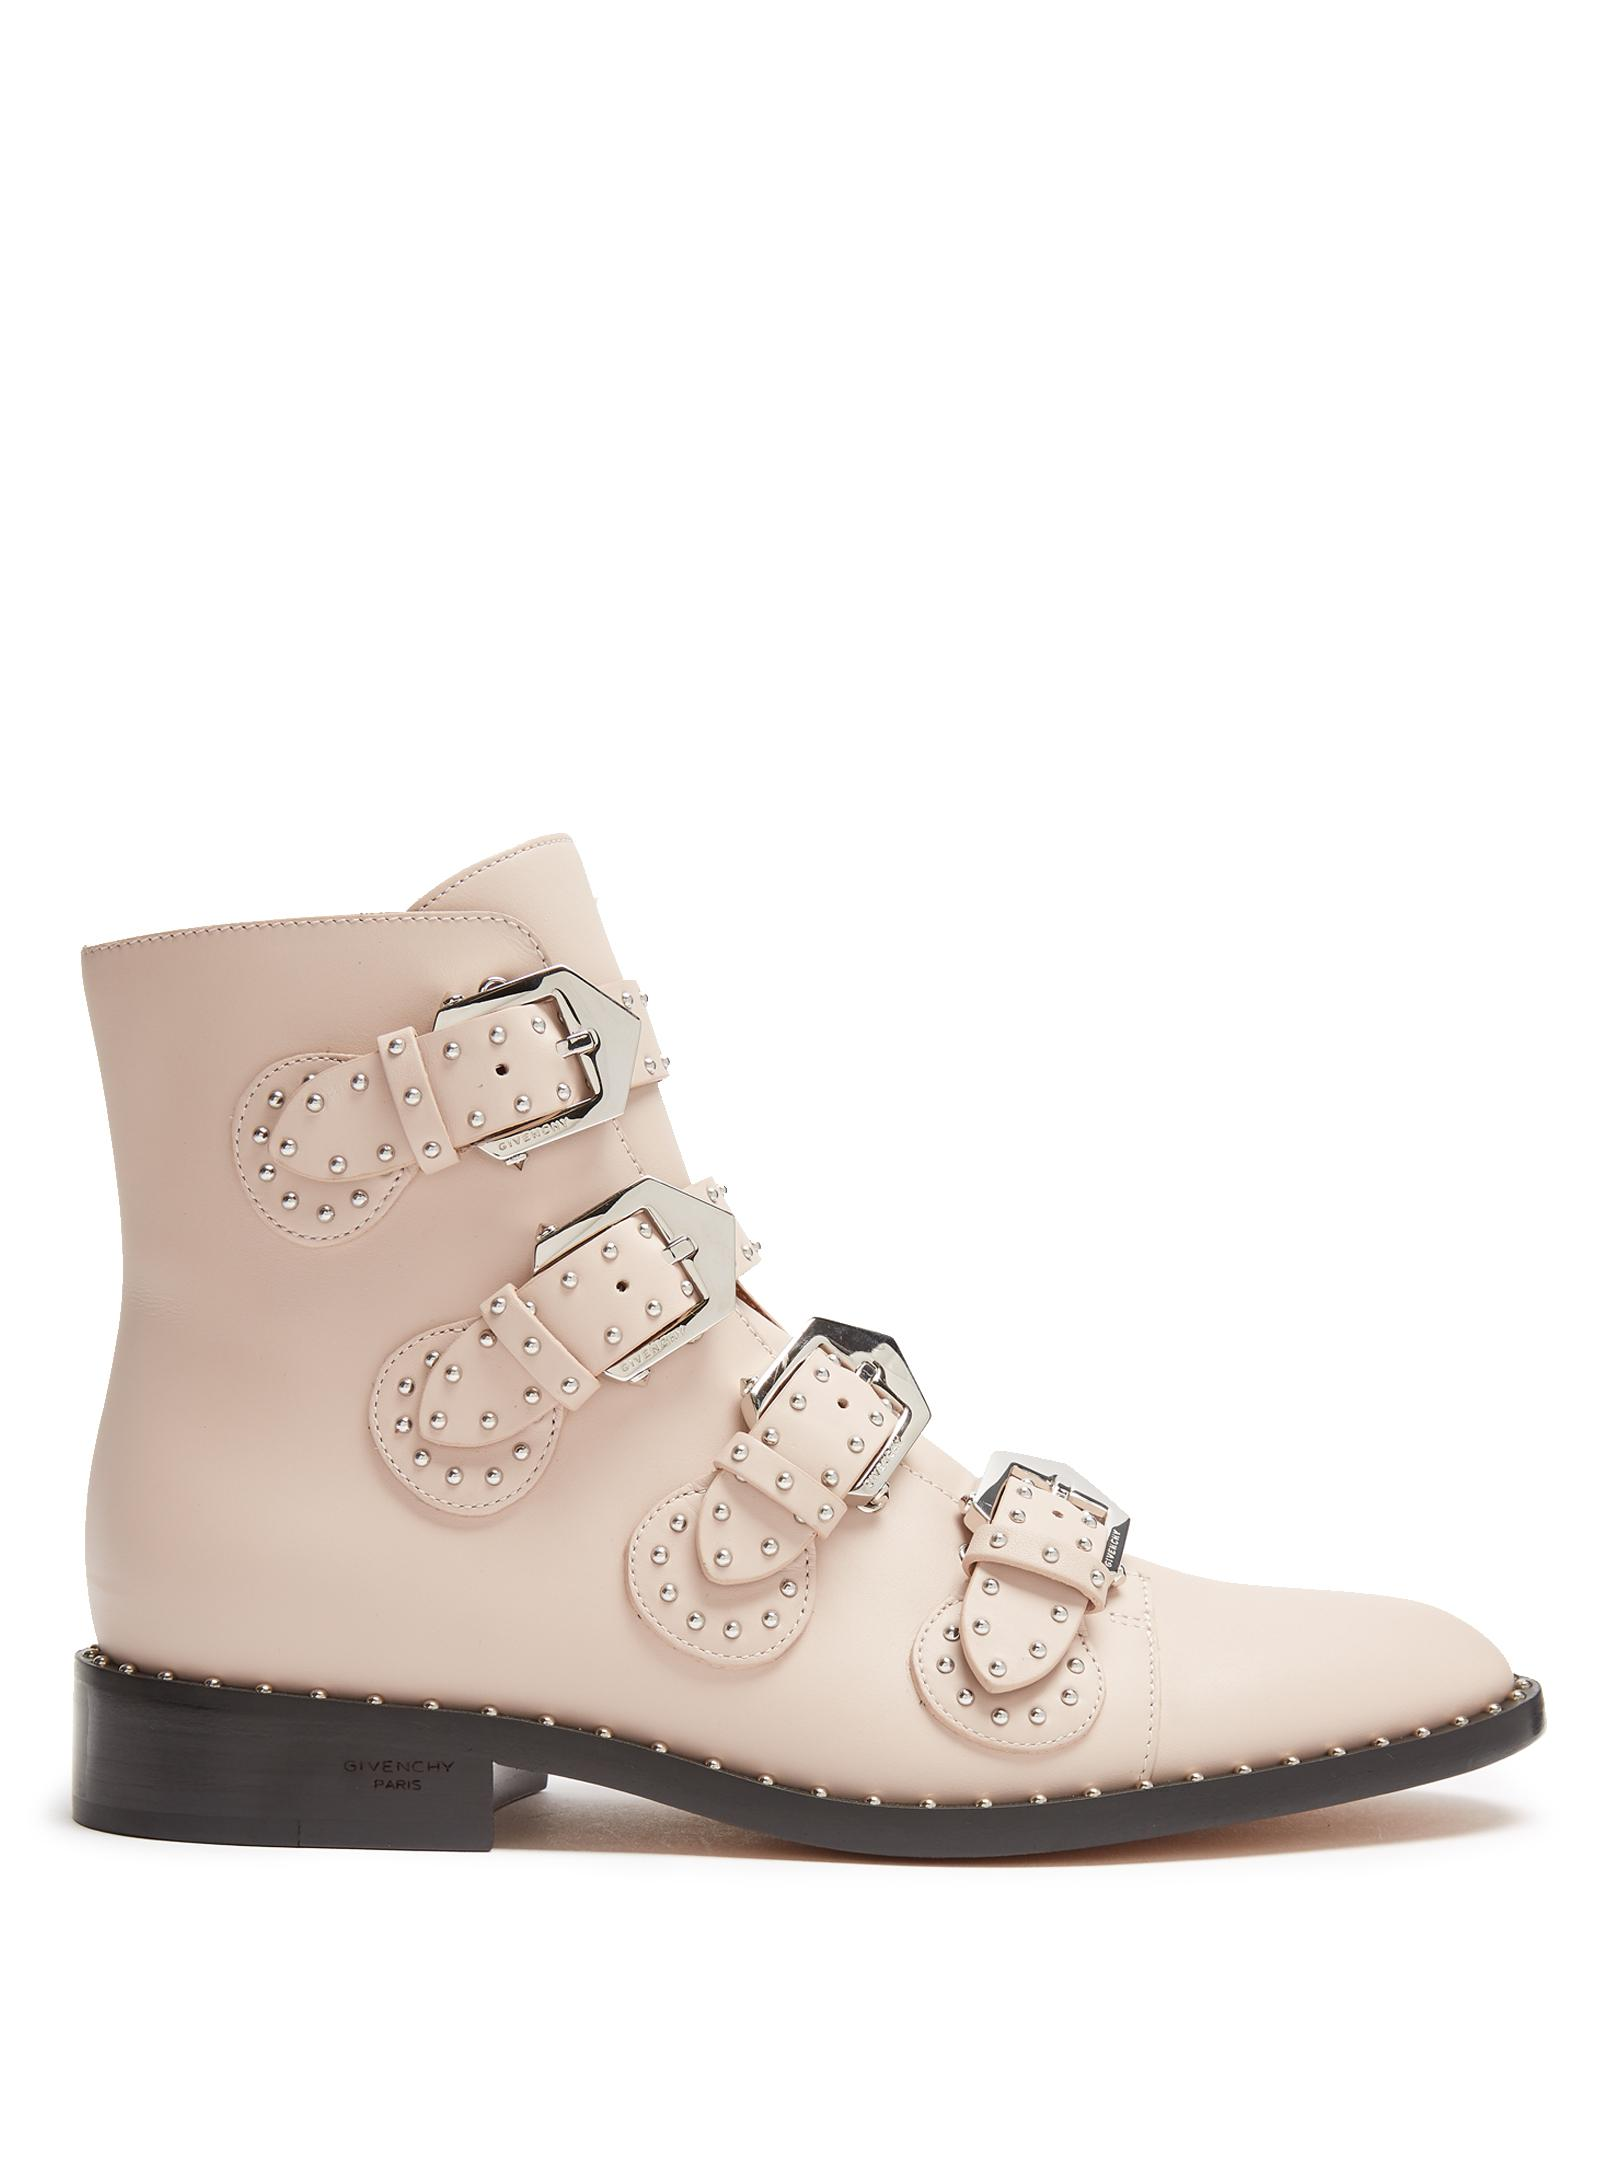 a048668e2da Givenchy Pink Elegant Studded Leather Ankle Boots